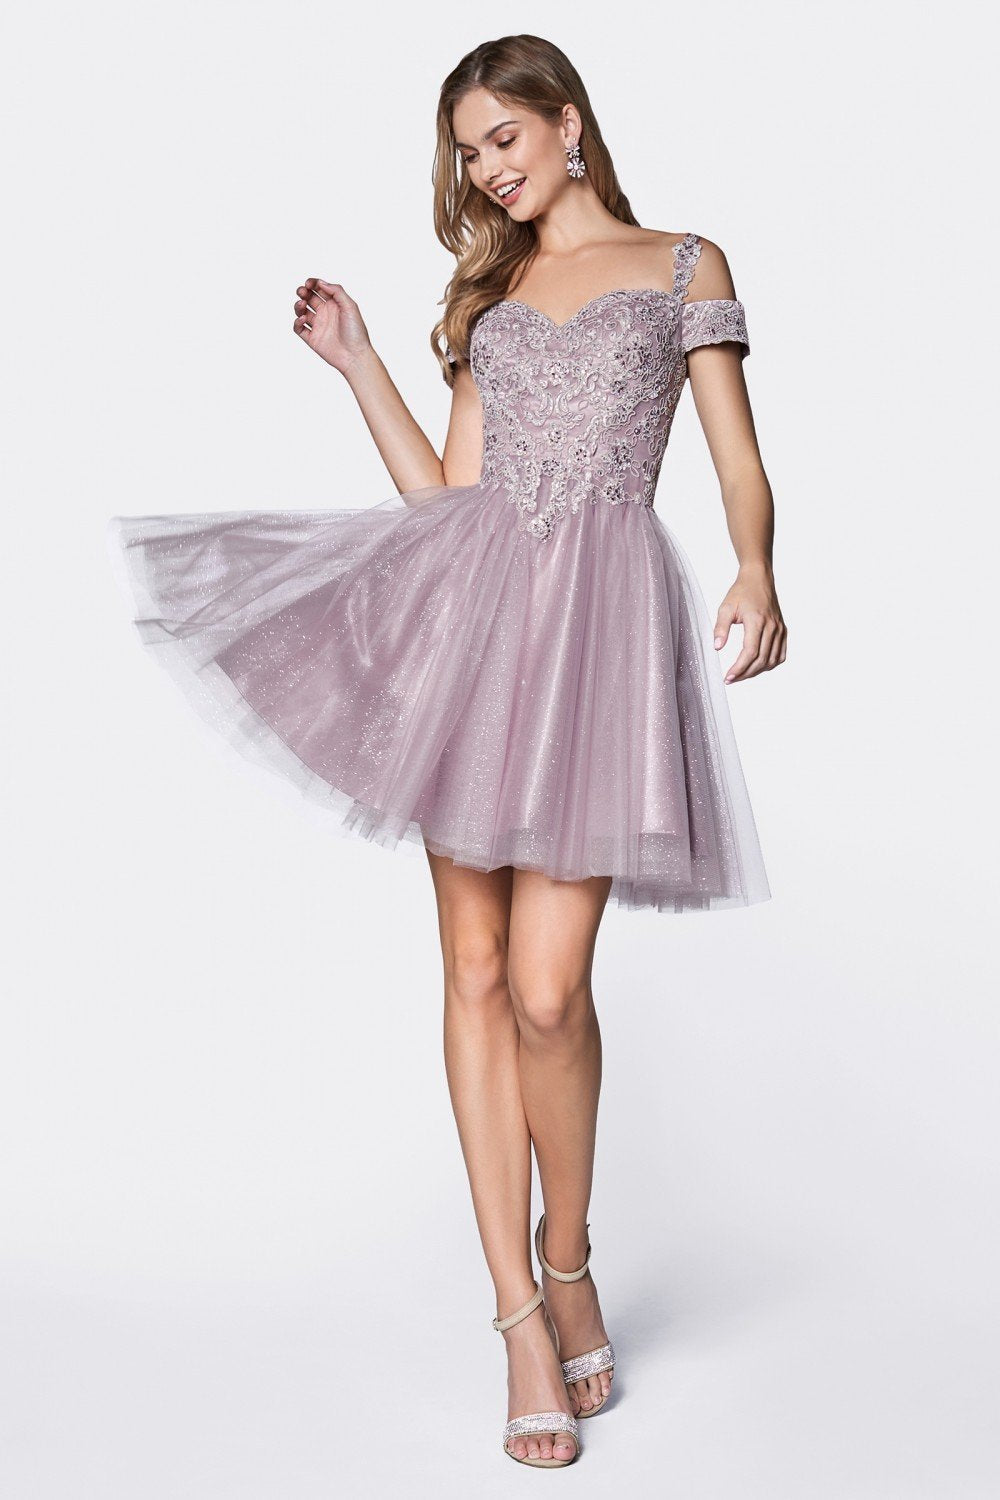 Cinderella Divine - CD0132SC Lace and Glitter Tulle Cocktail Dress